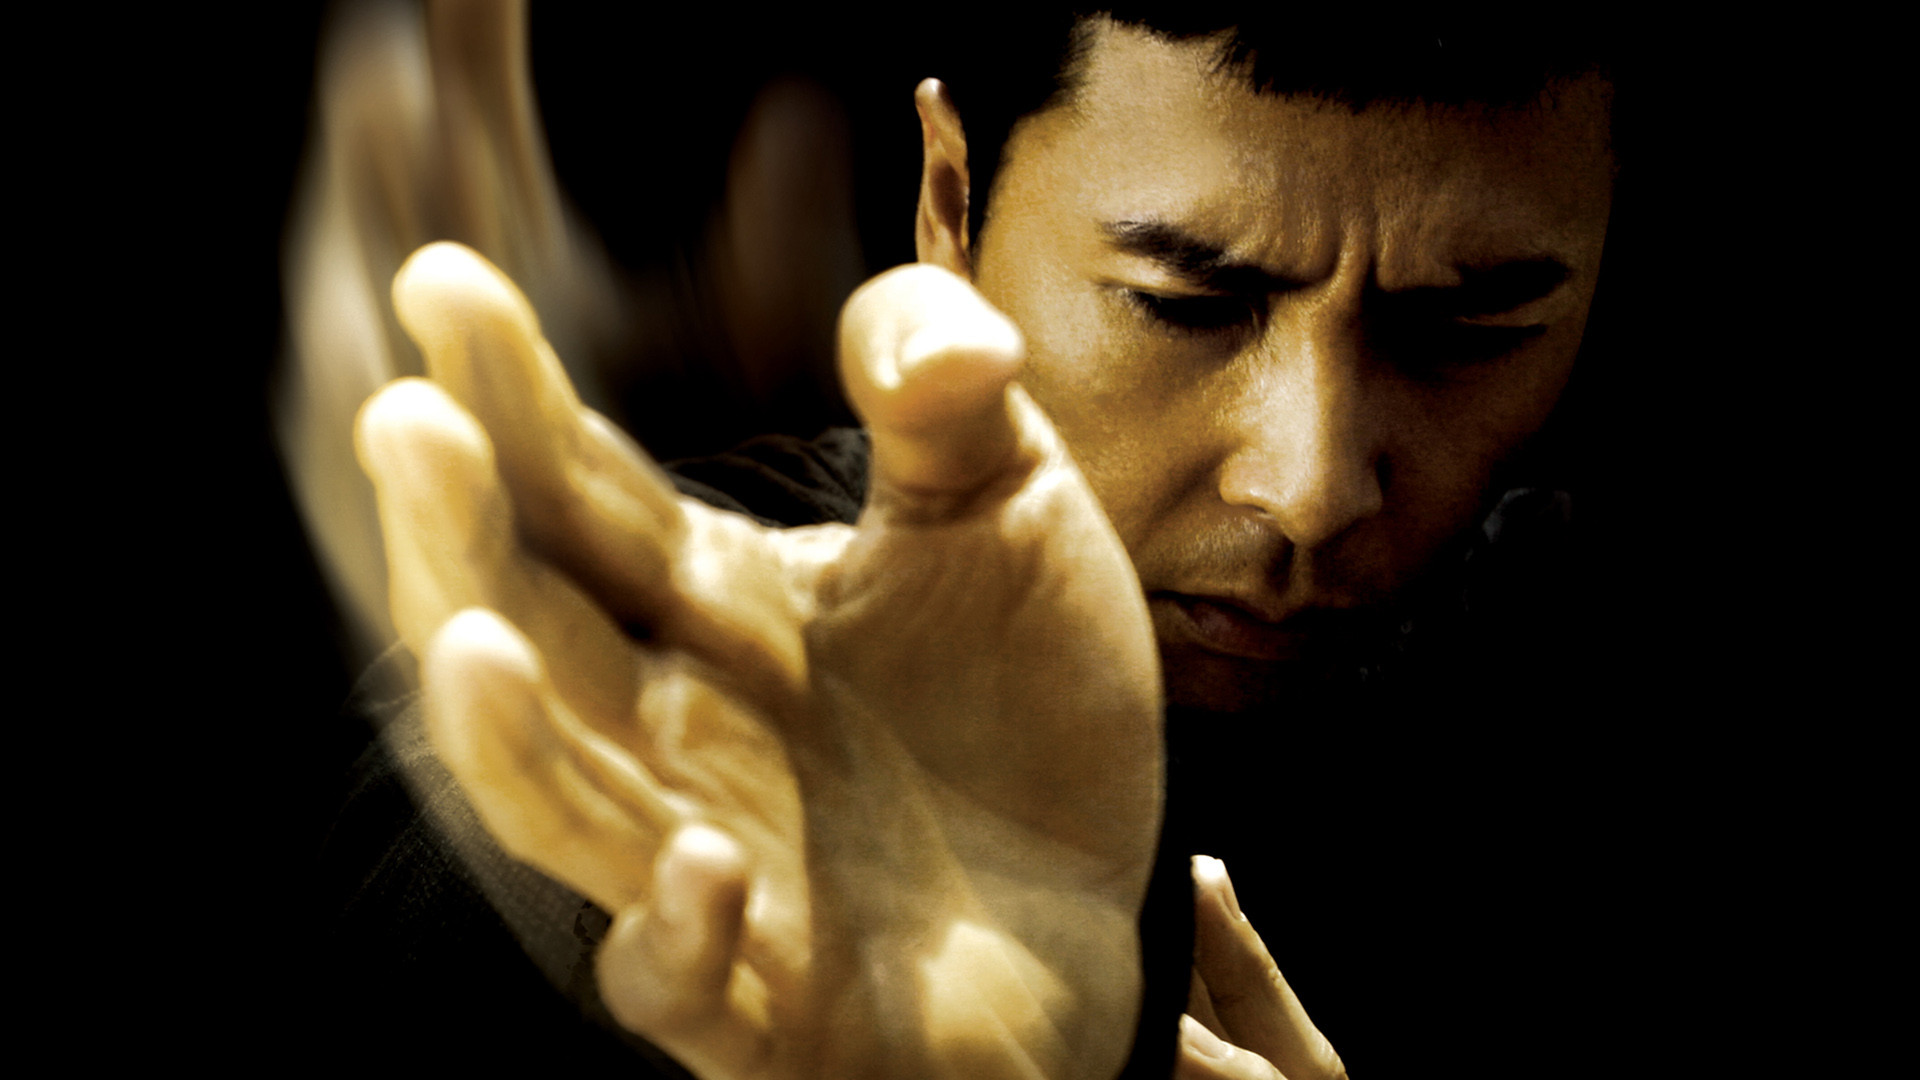 The Complete Ip Man / Wing Chun Movie List